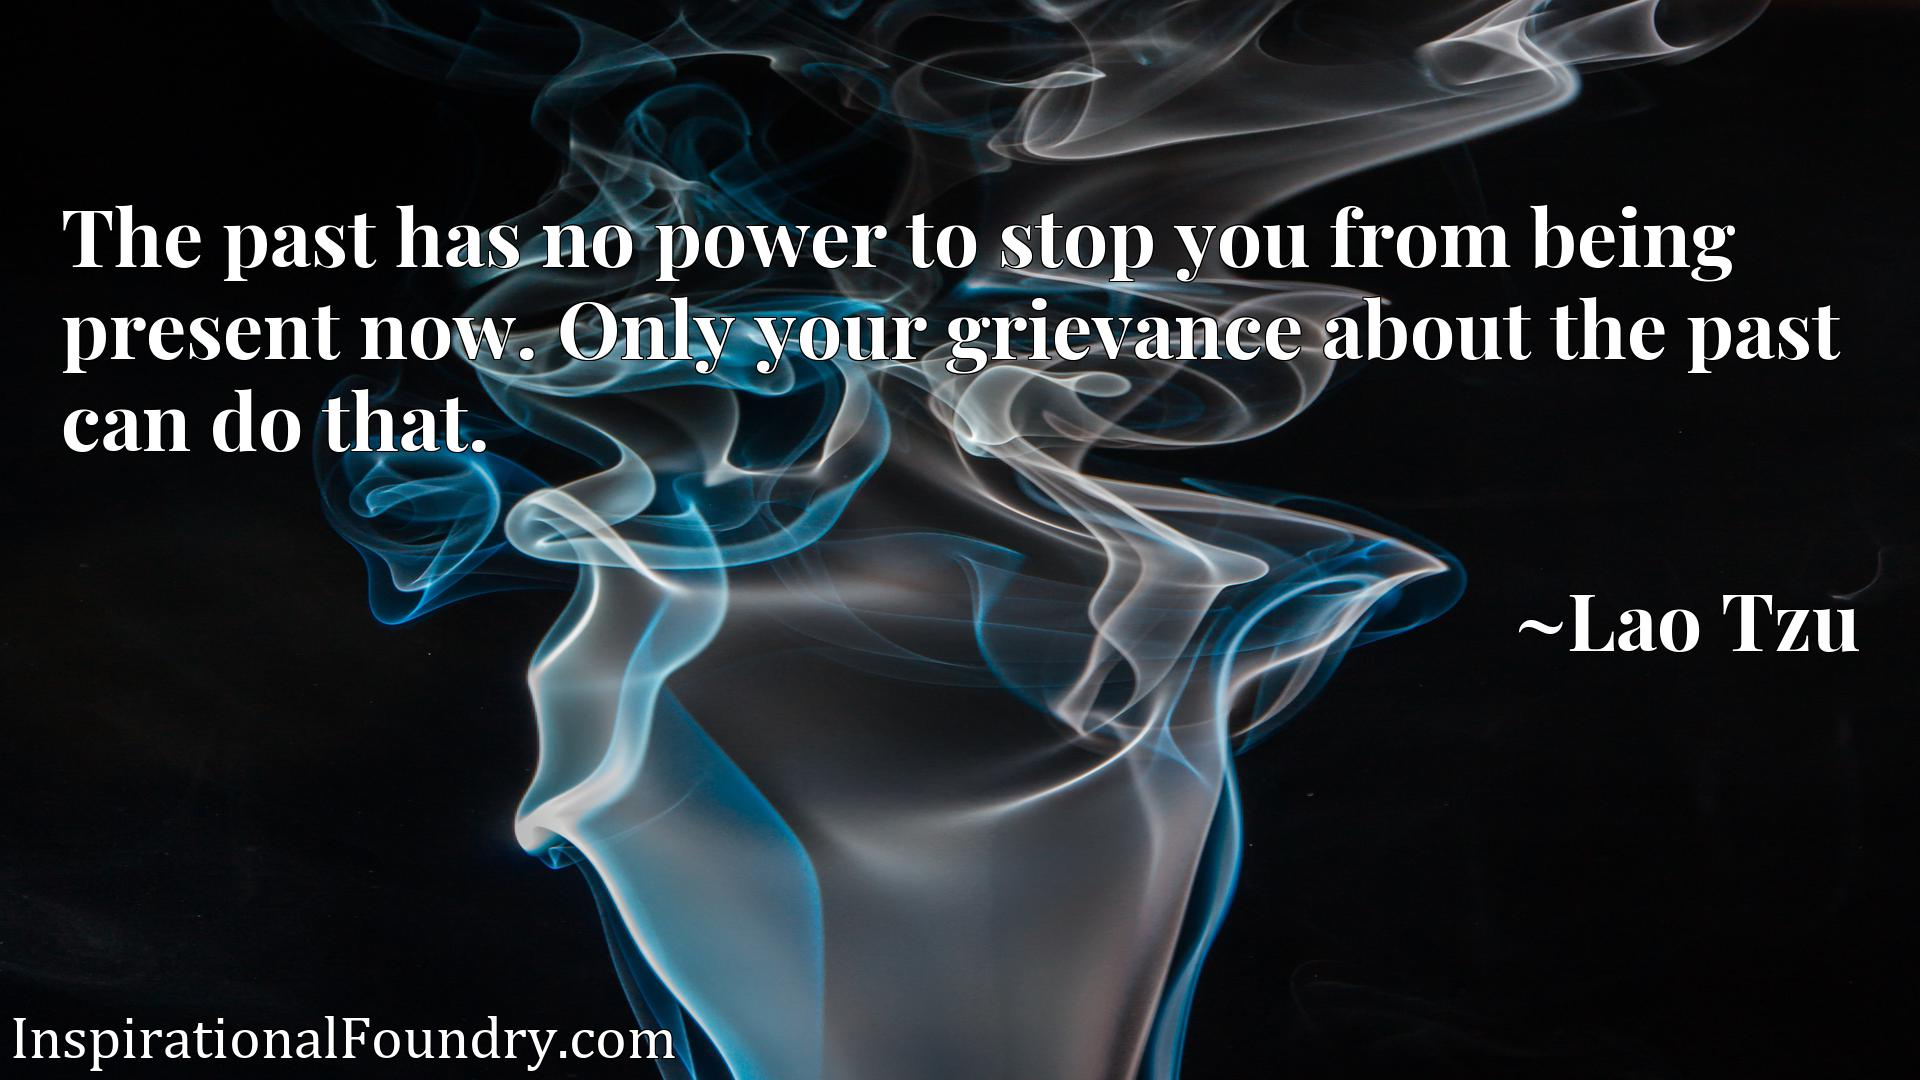 The past has no power to stop you from being present now. Only your grievance about the past can do that.